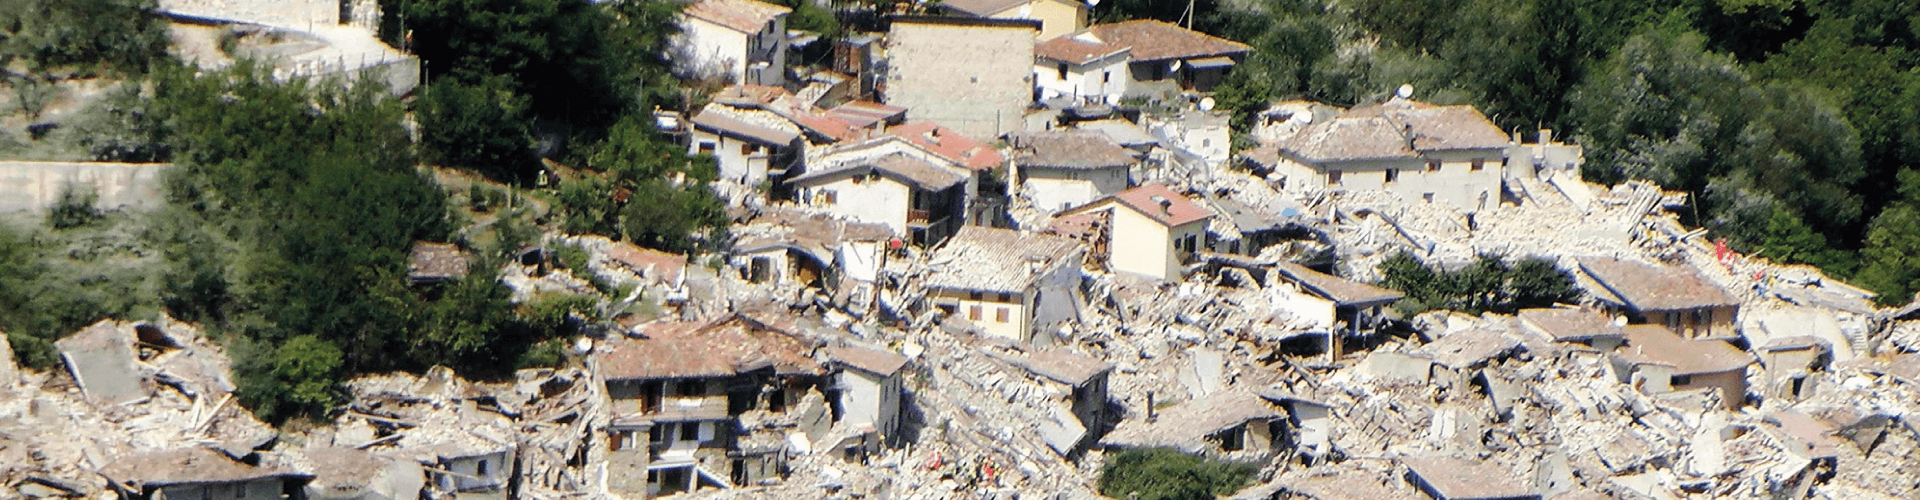 amatrice-1.png